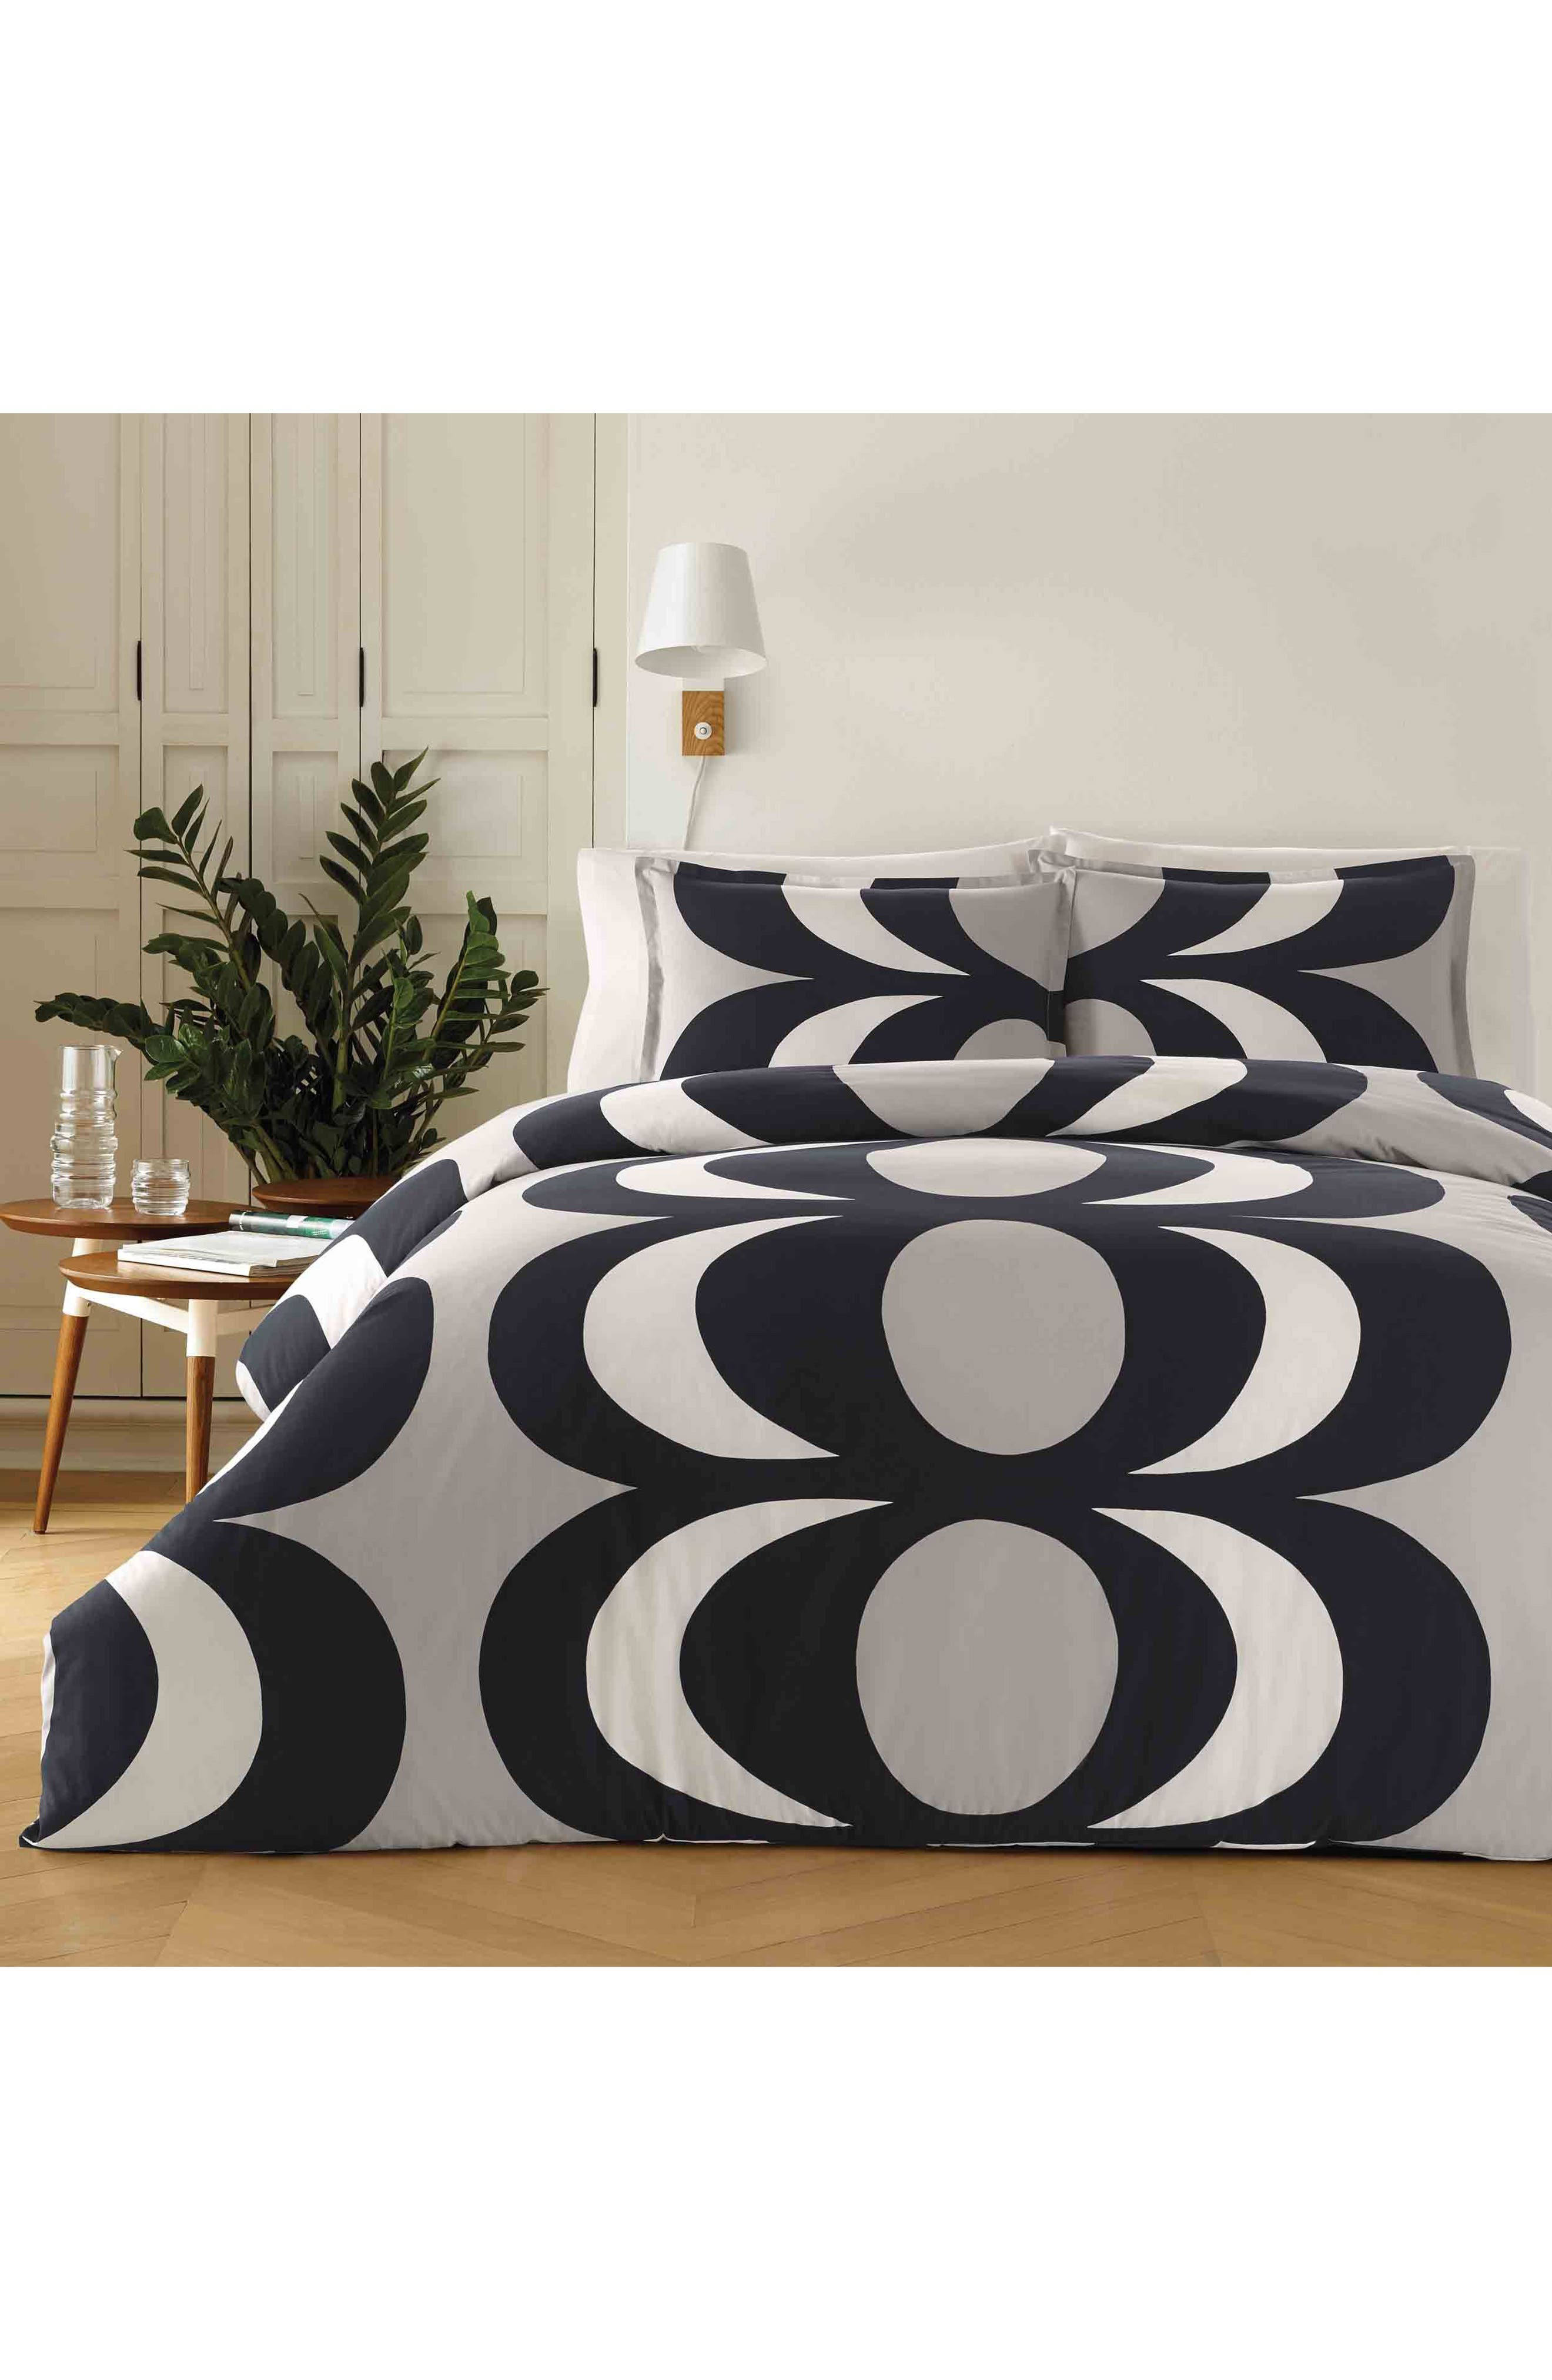 Alternate Image 1 Selected - Marimekko Kaivo Comforter & Sham Set